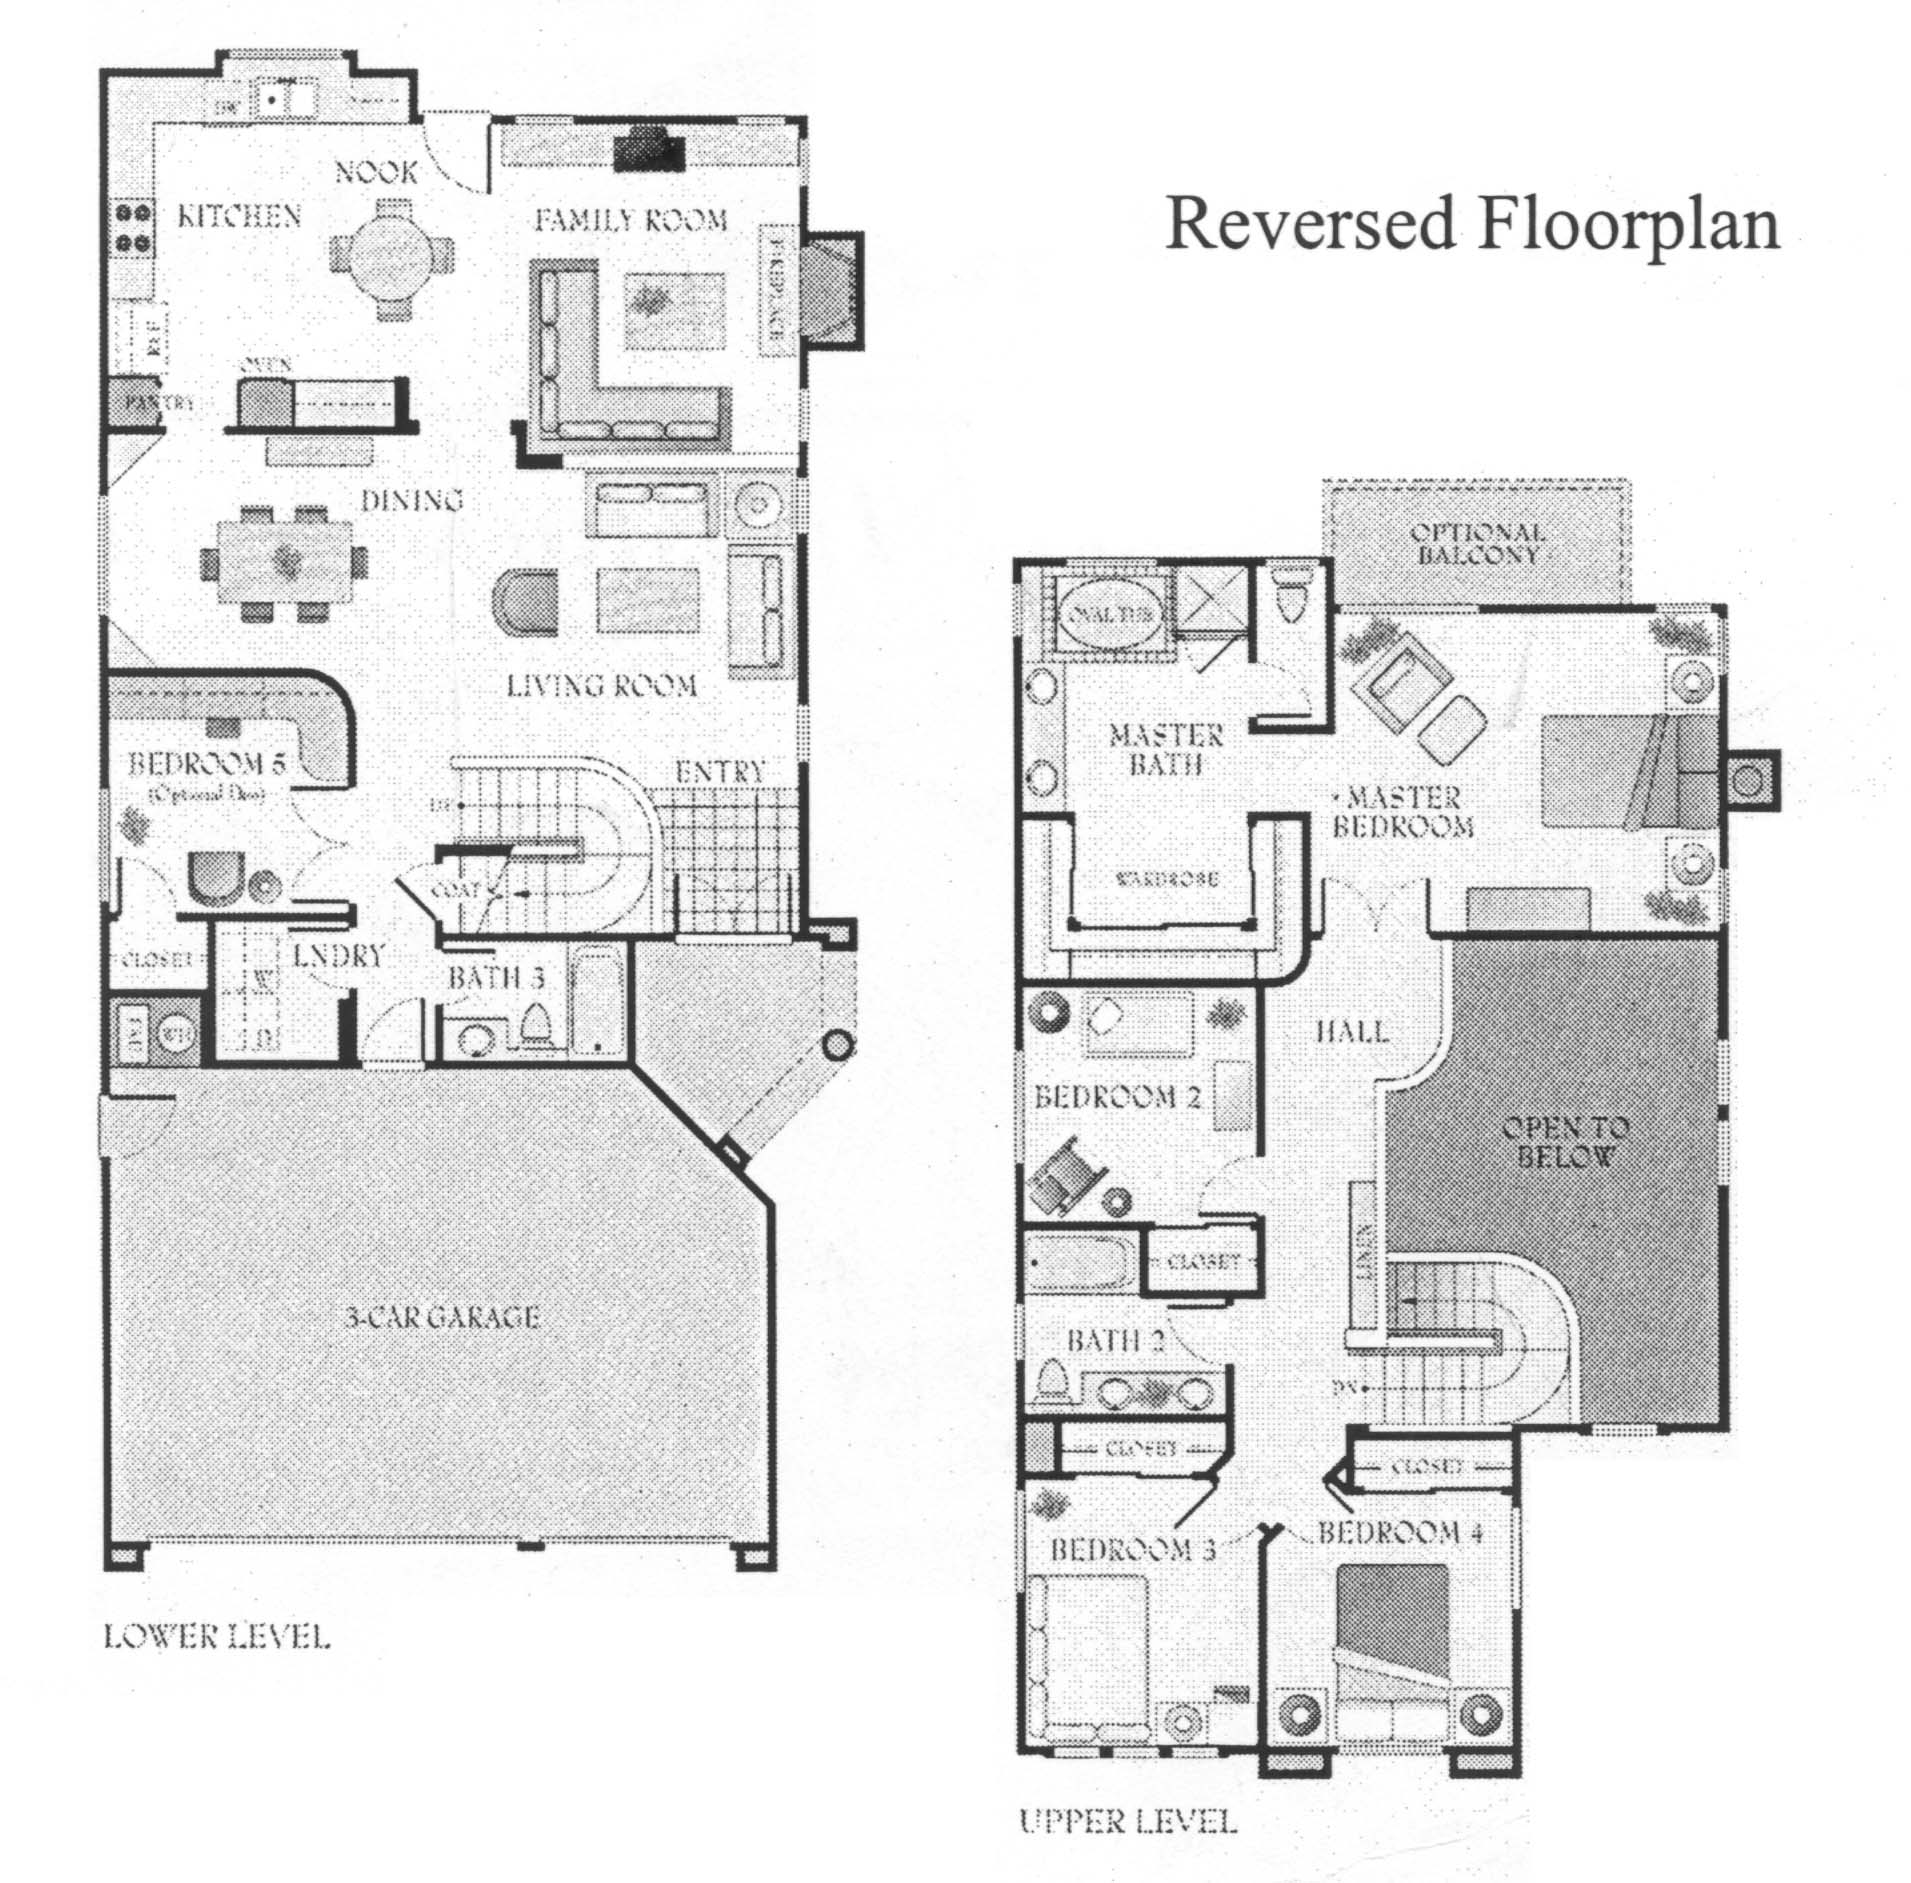 Master bath floor plans best layout room for Best bathroom layout plans